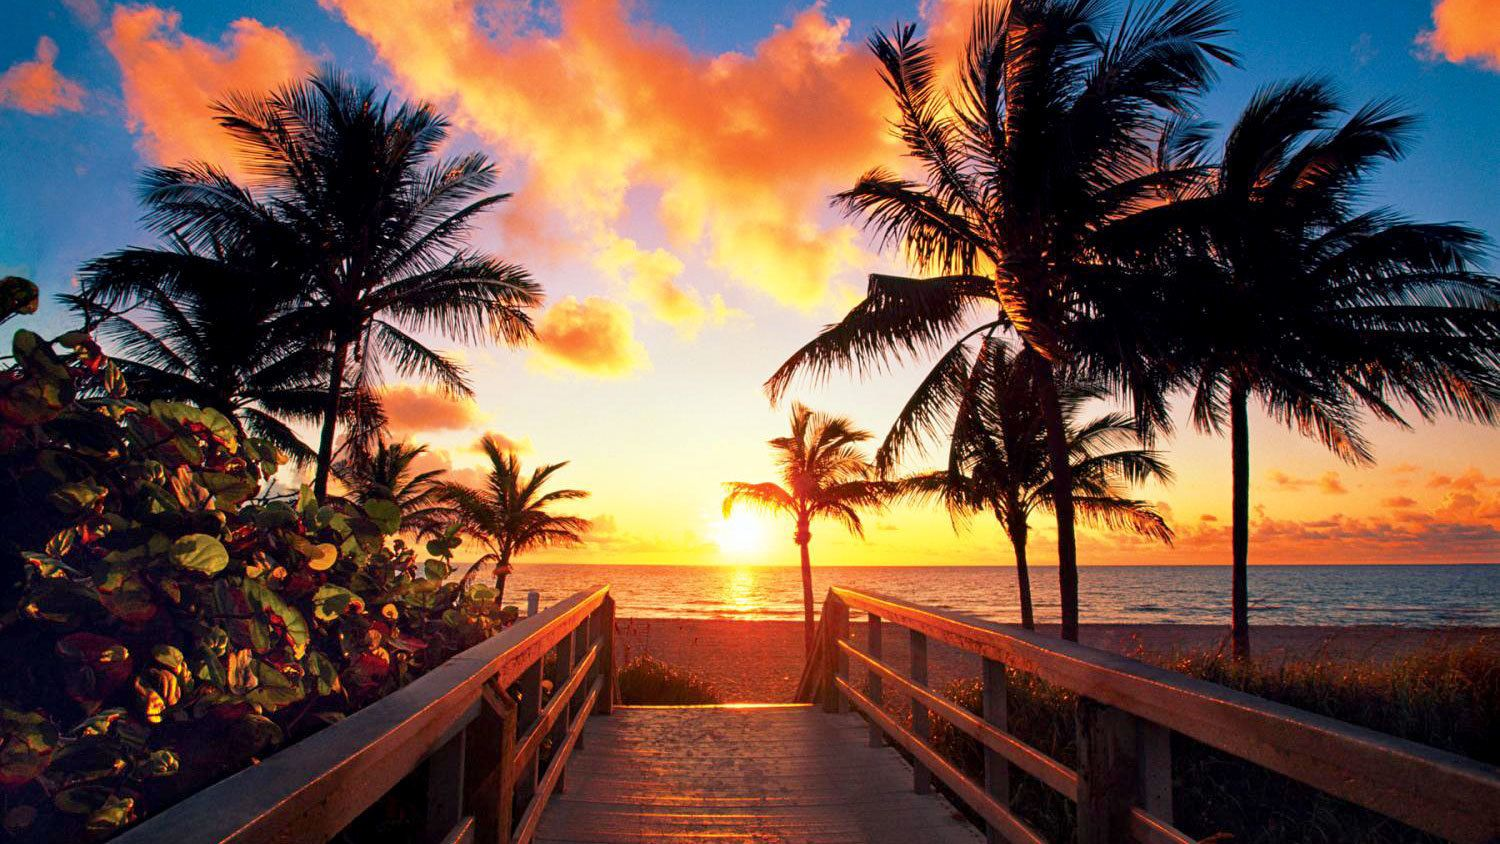 Sunset at a beach in Key West